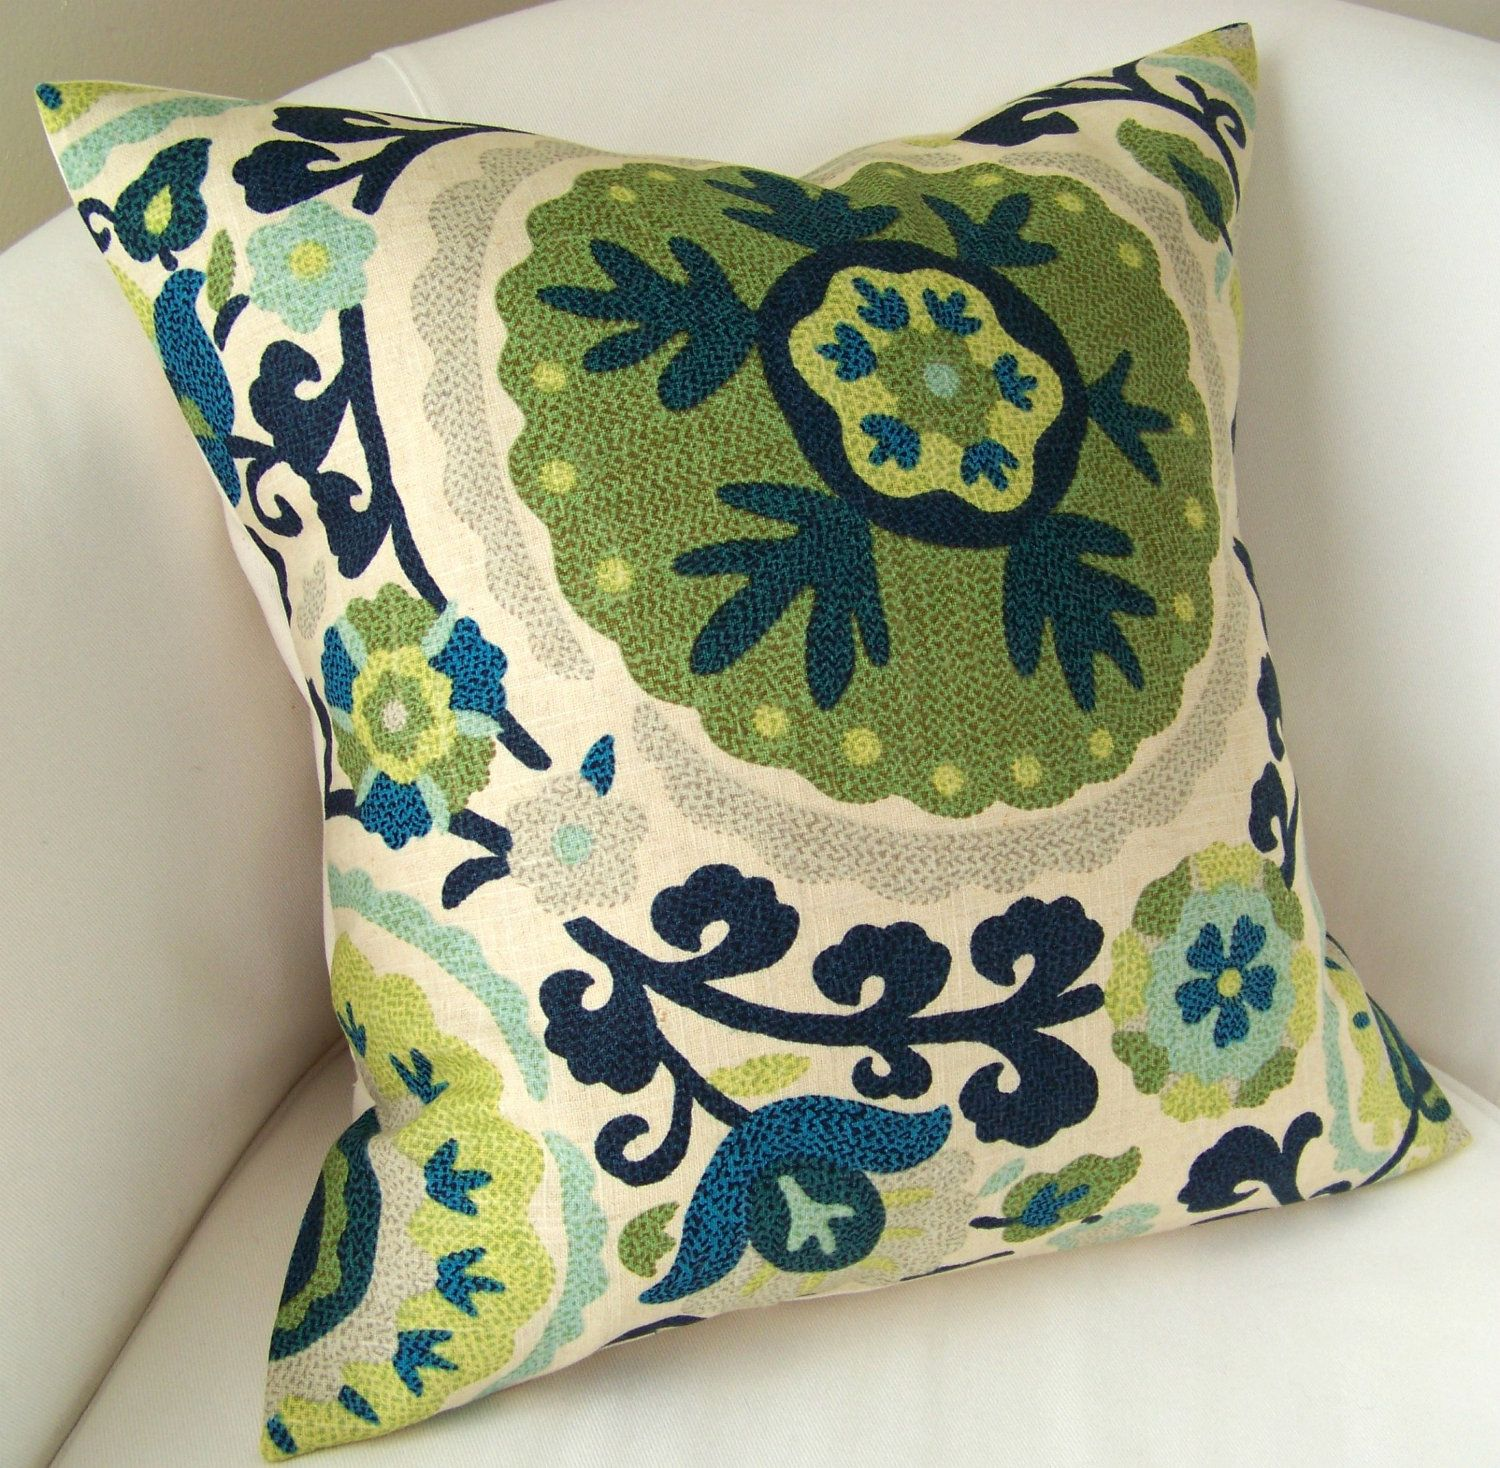 cushions blanket throw accent gallery and scatter cushion green teal paisley pillow pillows blue